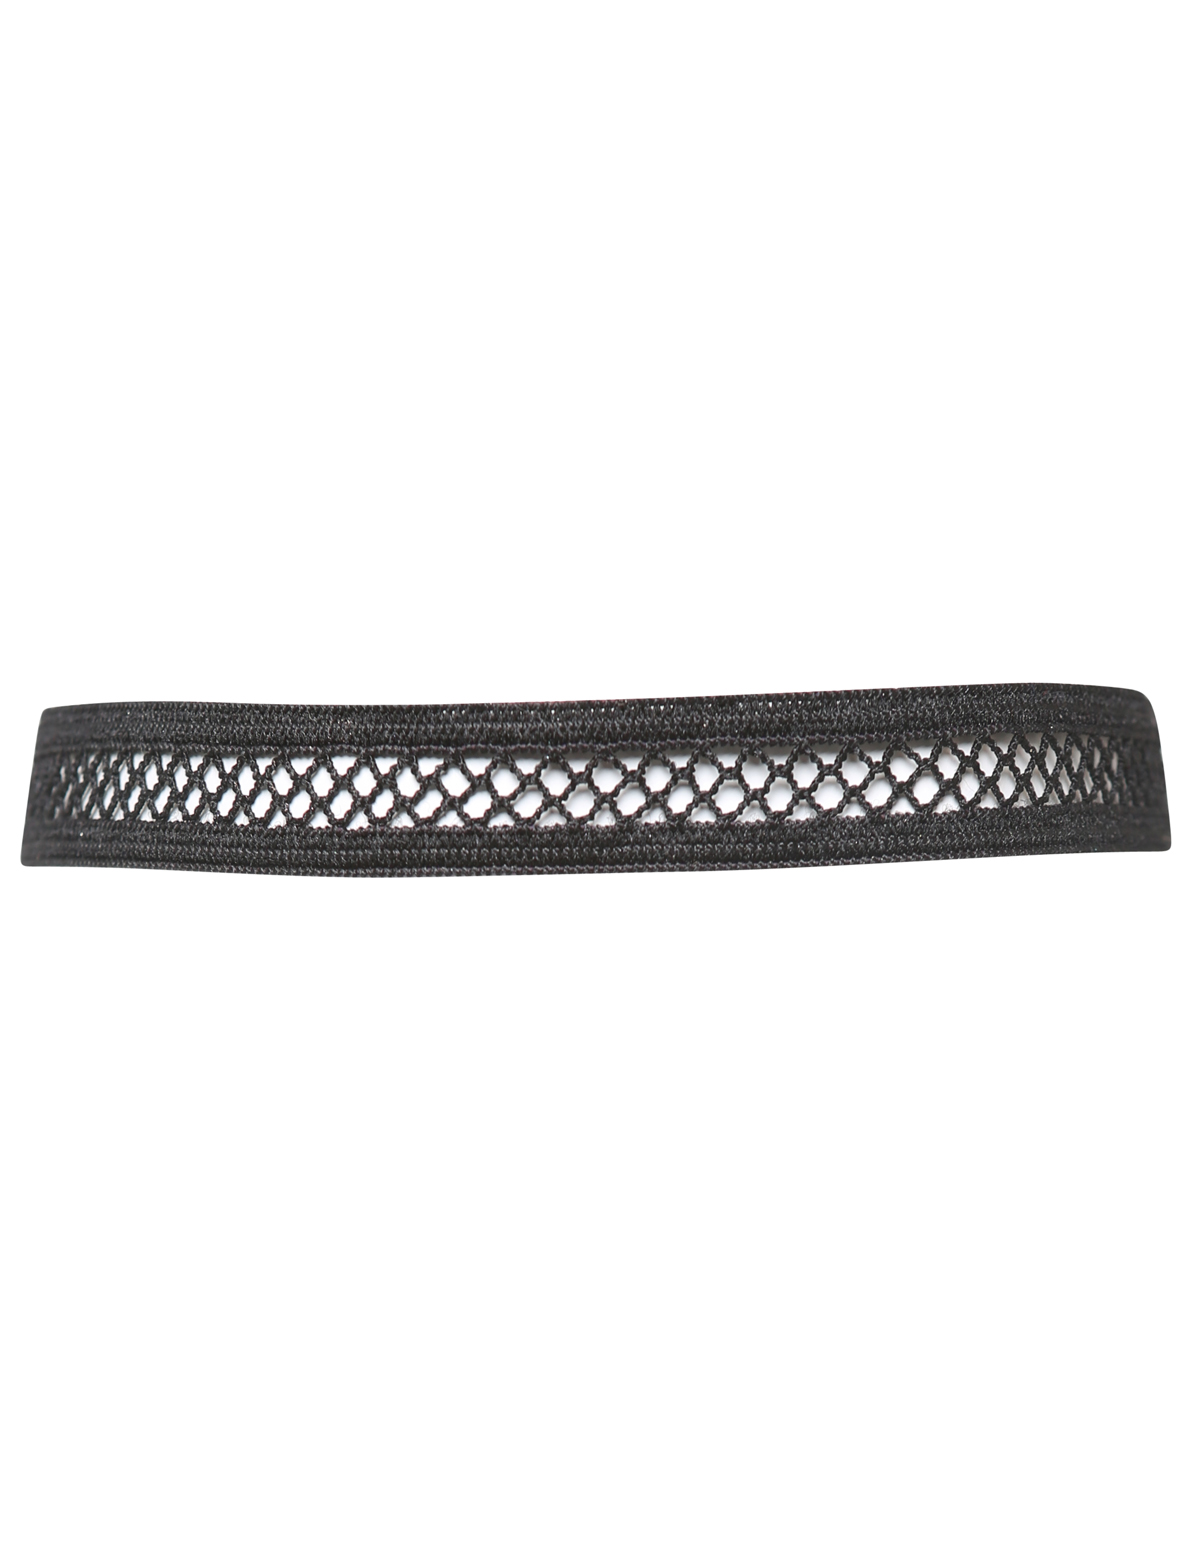 Image of Attitude Fishnet Choker In Black